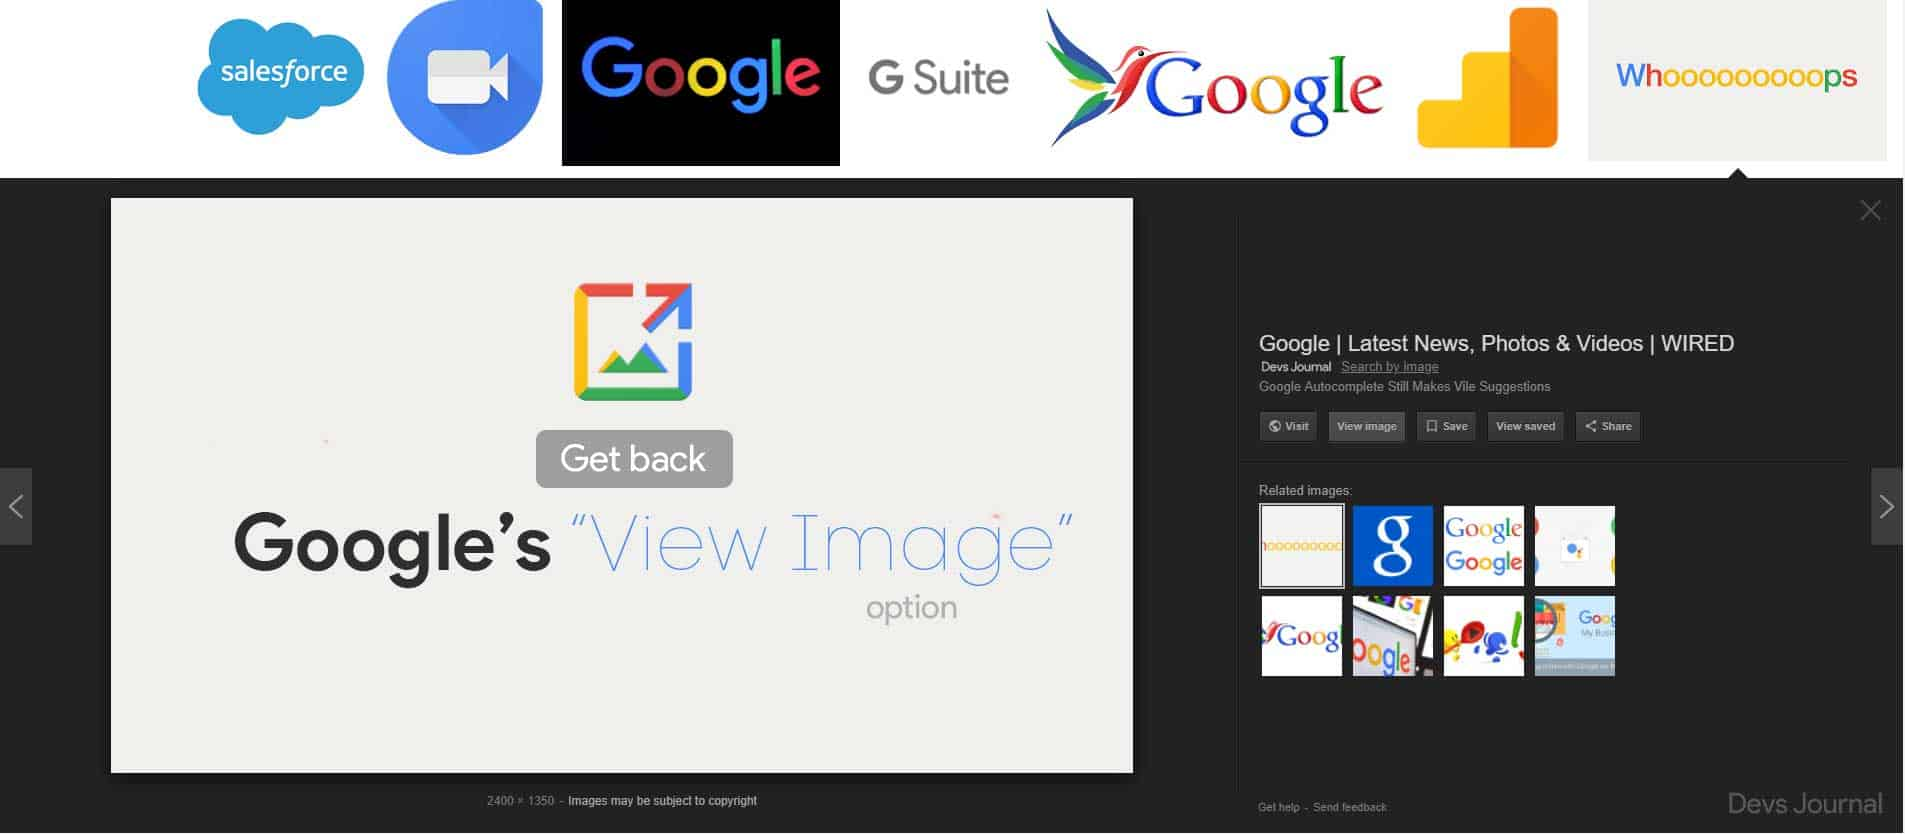 How To Bring Back The View Image Option In Google Image